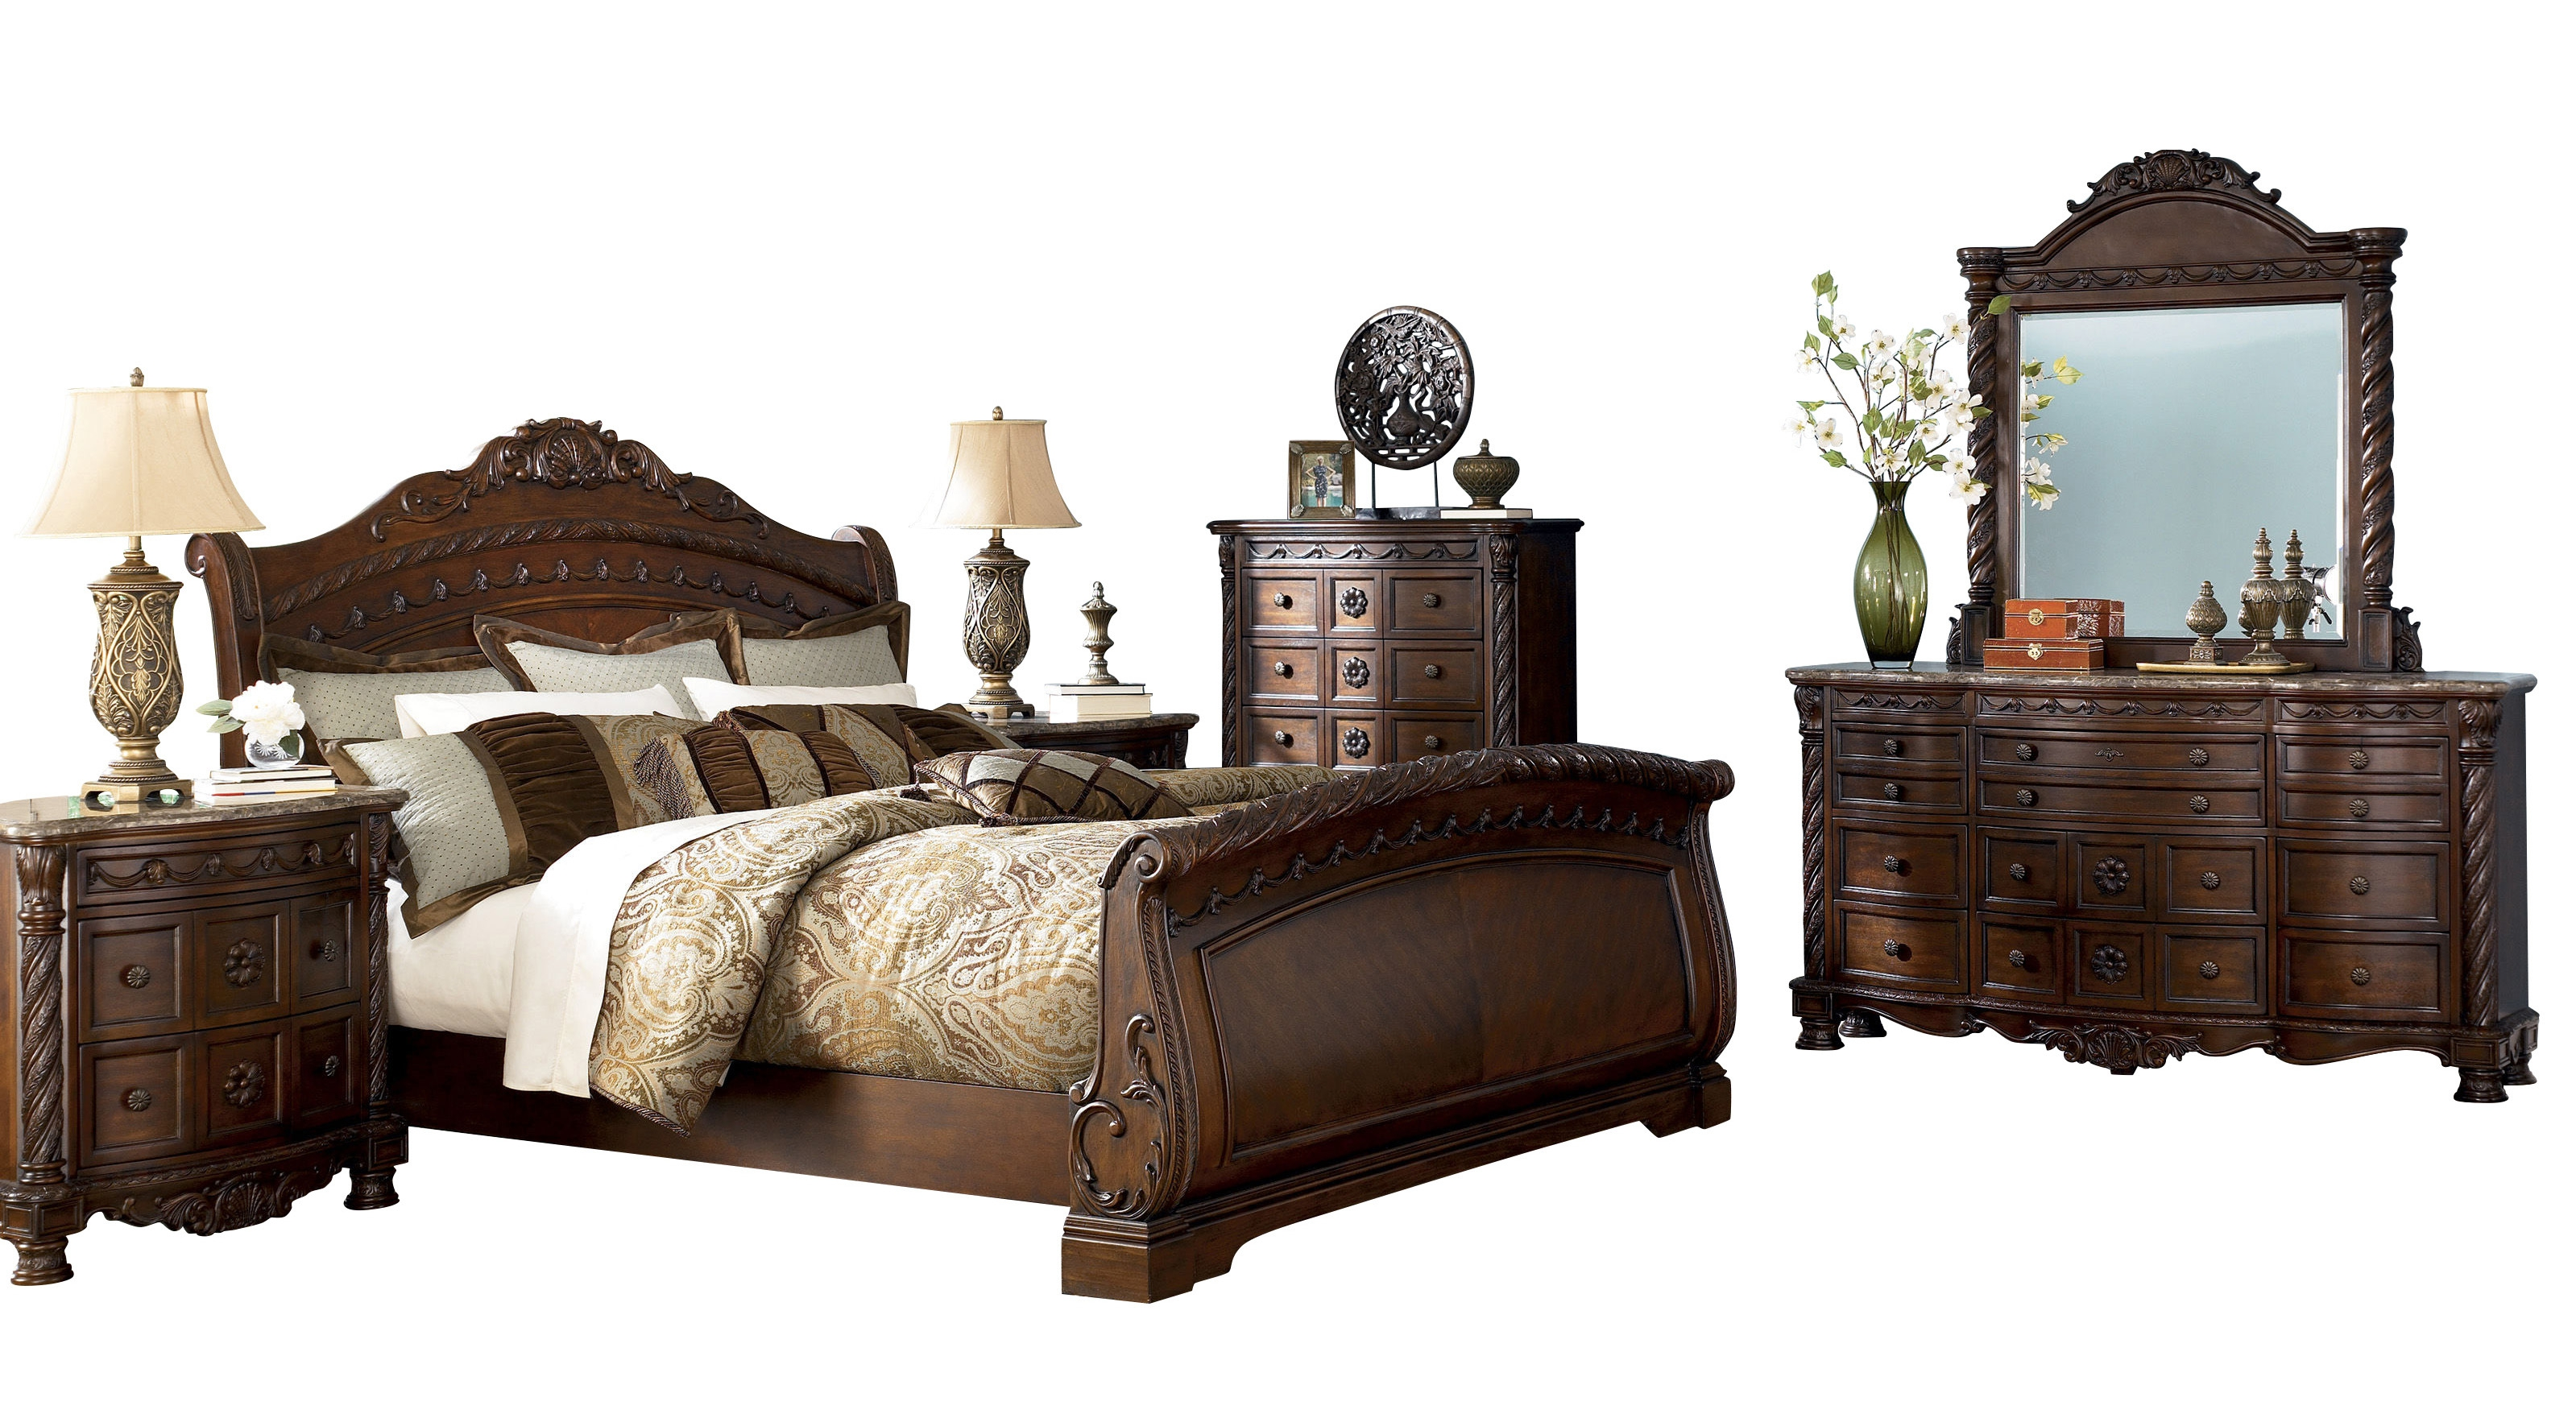 North shore bedroom set bedrooms the classy home - North shore sleigh bedroom set sale ...